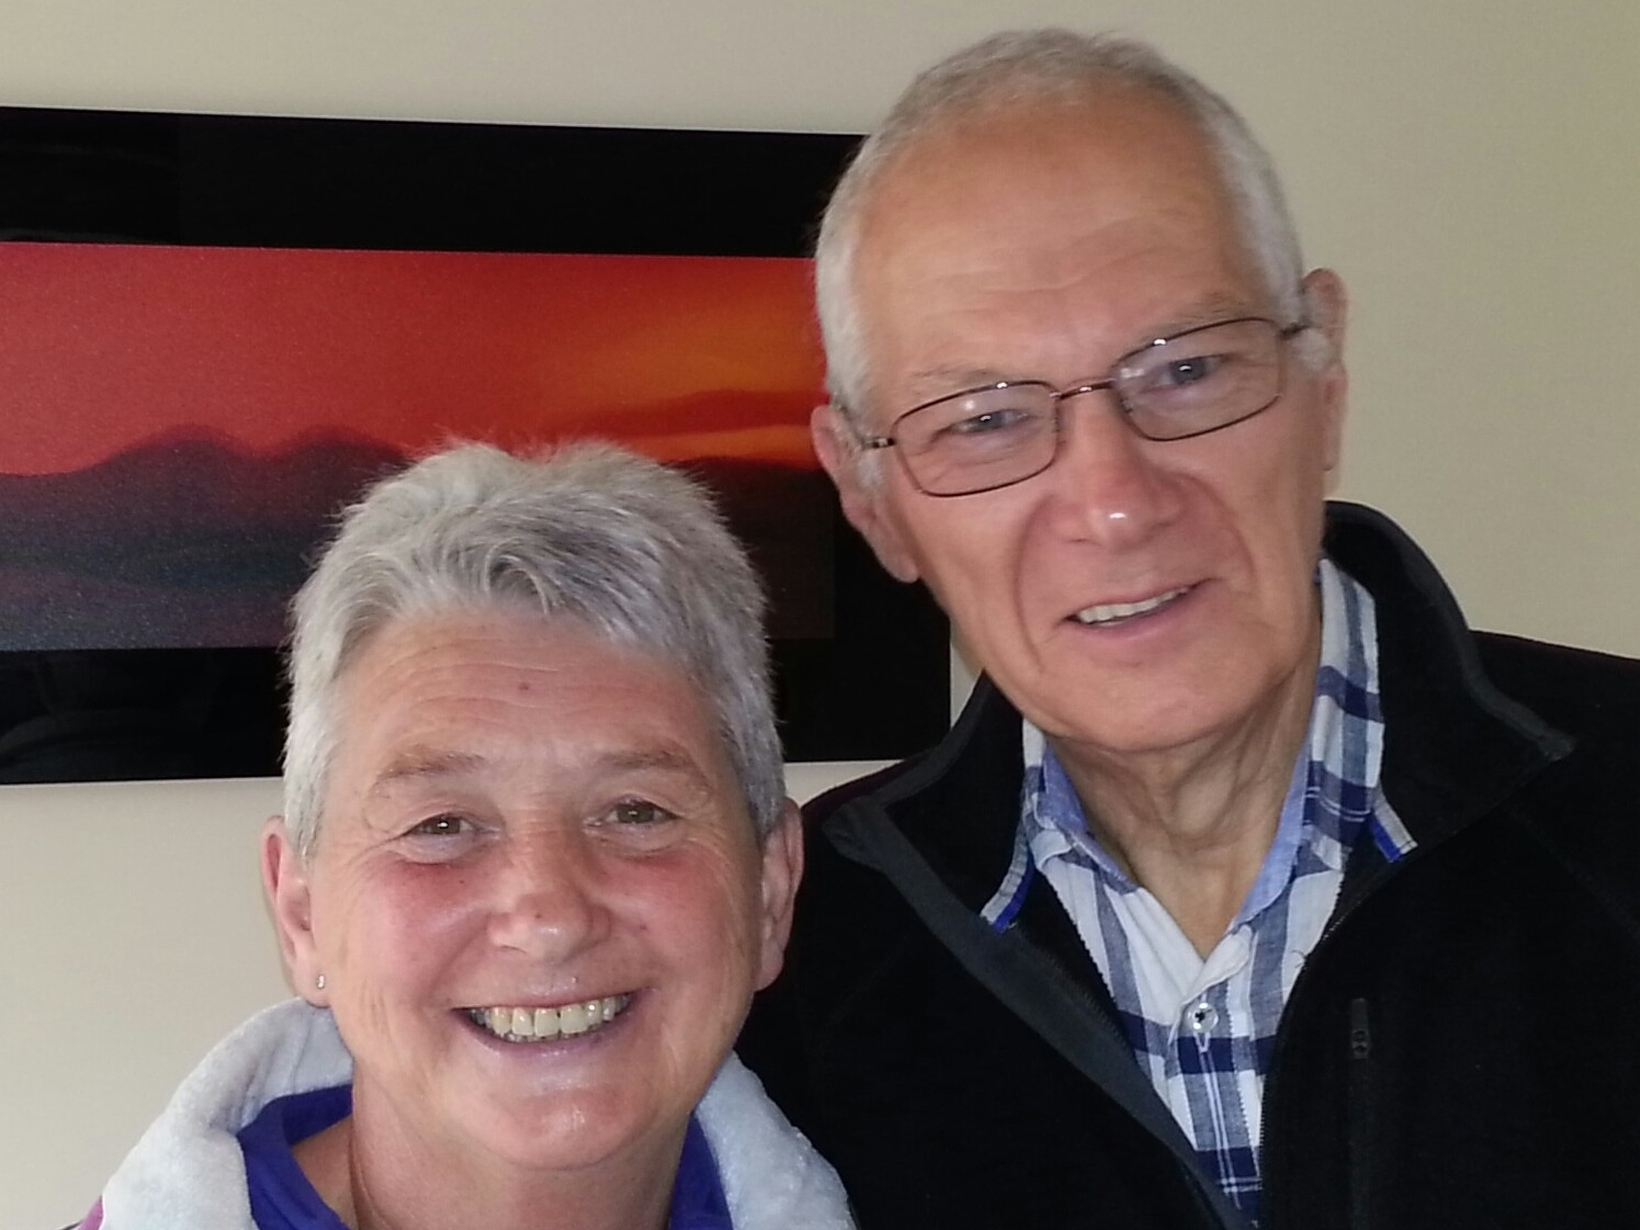 Ann & Martin from Manchester, United Kingdom